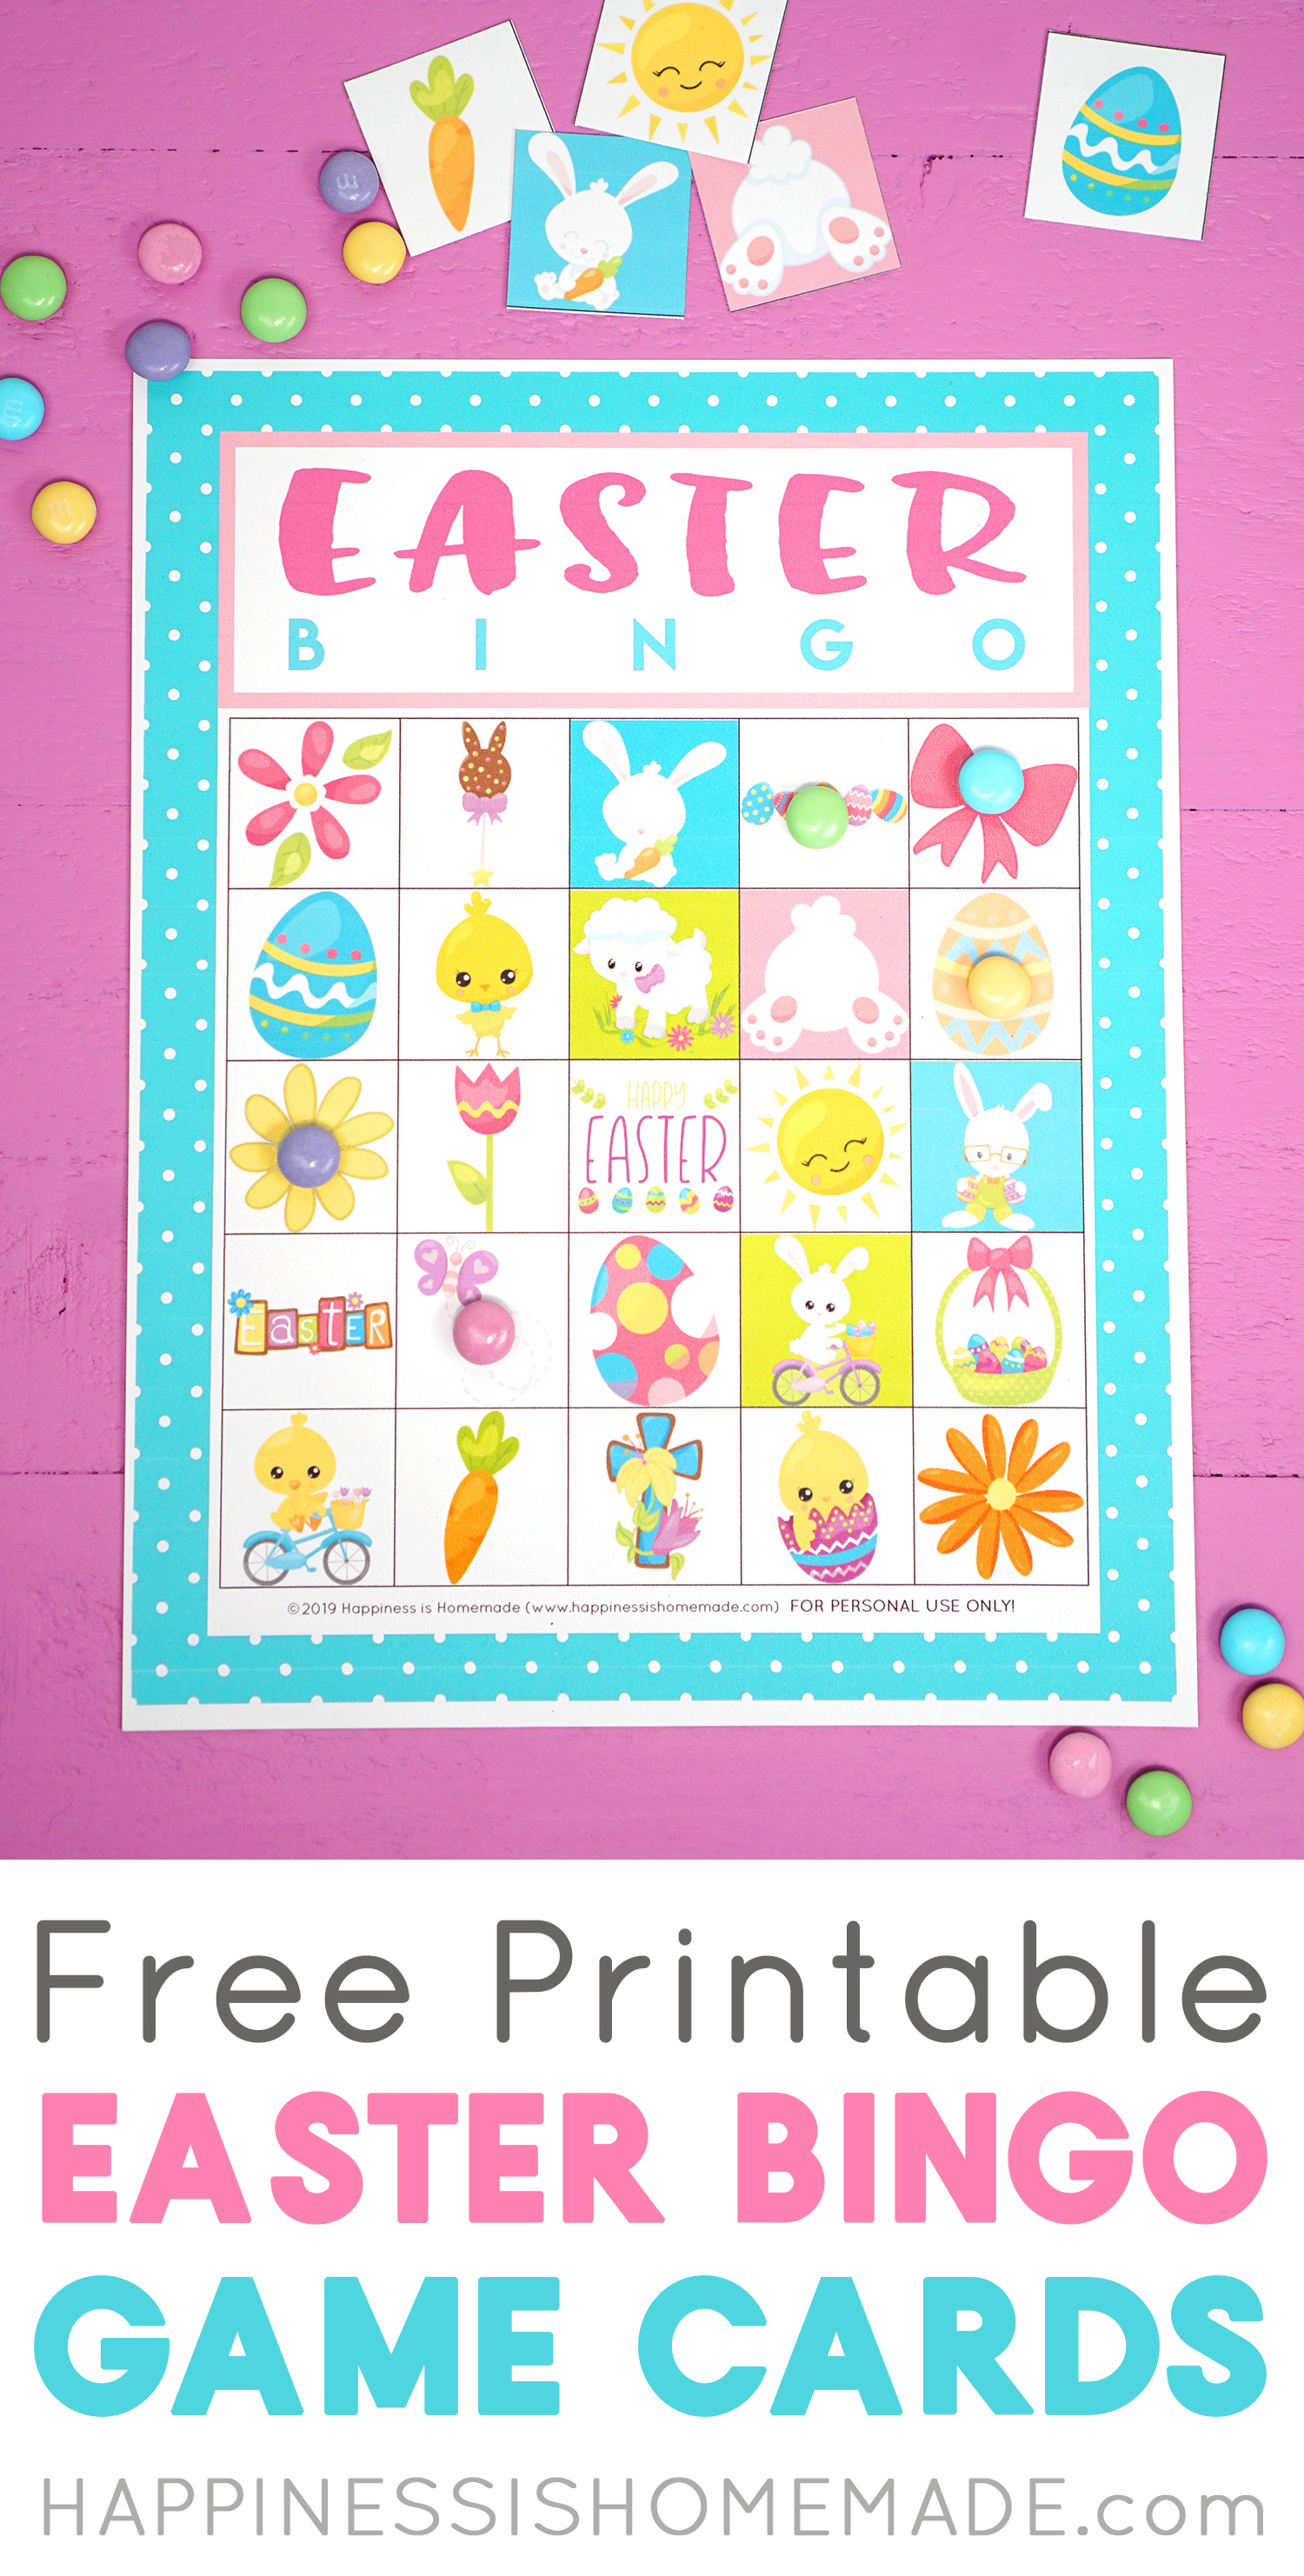 graphic about Free Printable Easter Cards named Absolutely free Printable Easter Bingo Sport Playing cards - Contentment is Selfmade